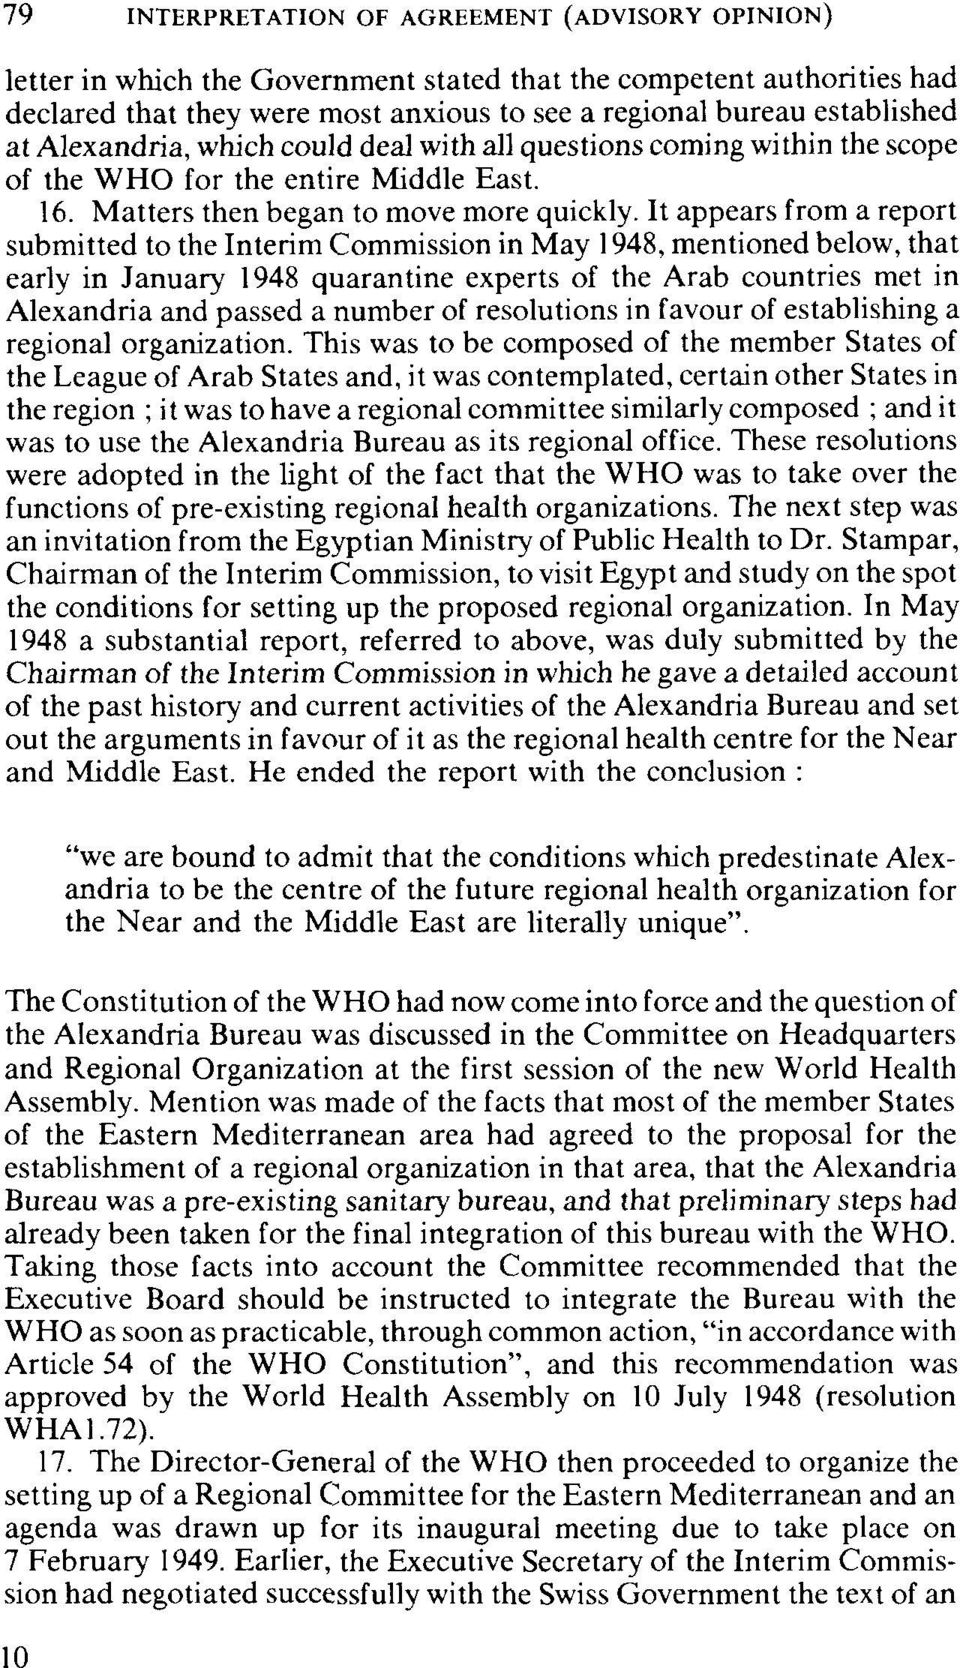 It appears from a report submitted to the Interim Commission in May 1948, mentioned below, that early in January 1948 quarantine experts of the Arab countries met in Alexandria and passed a number of